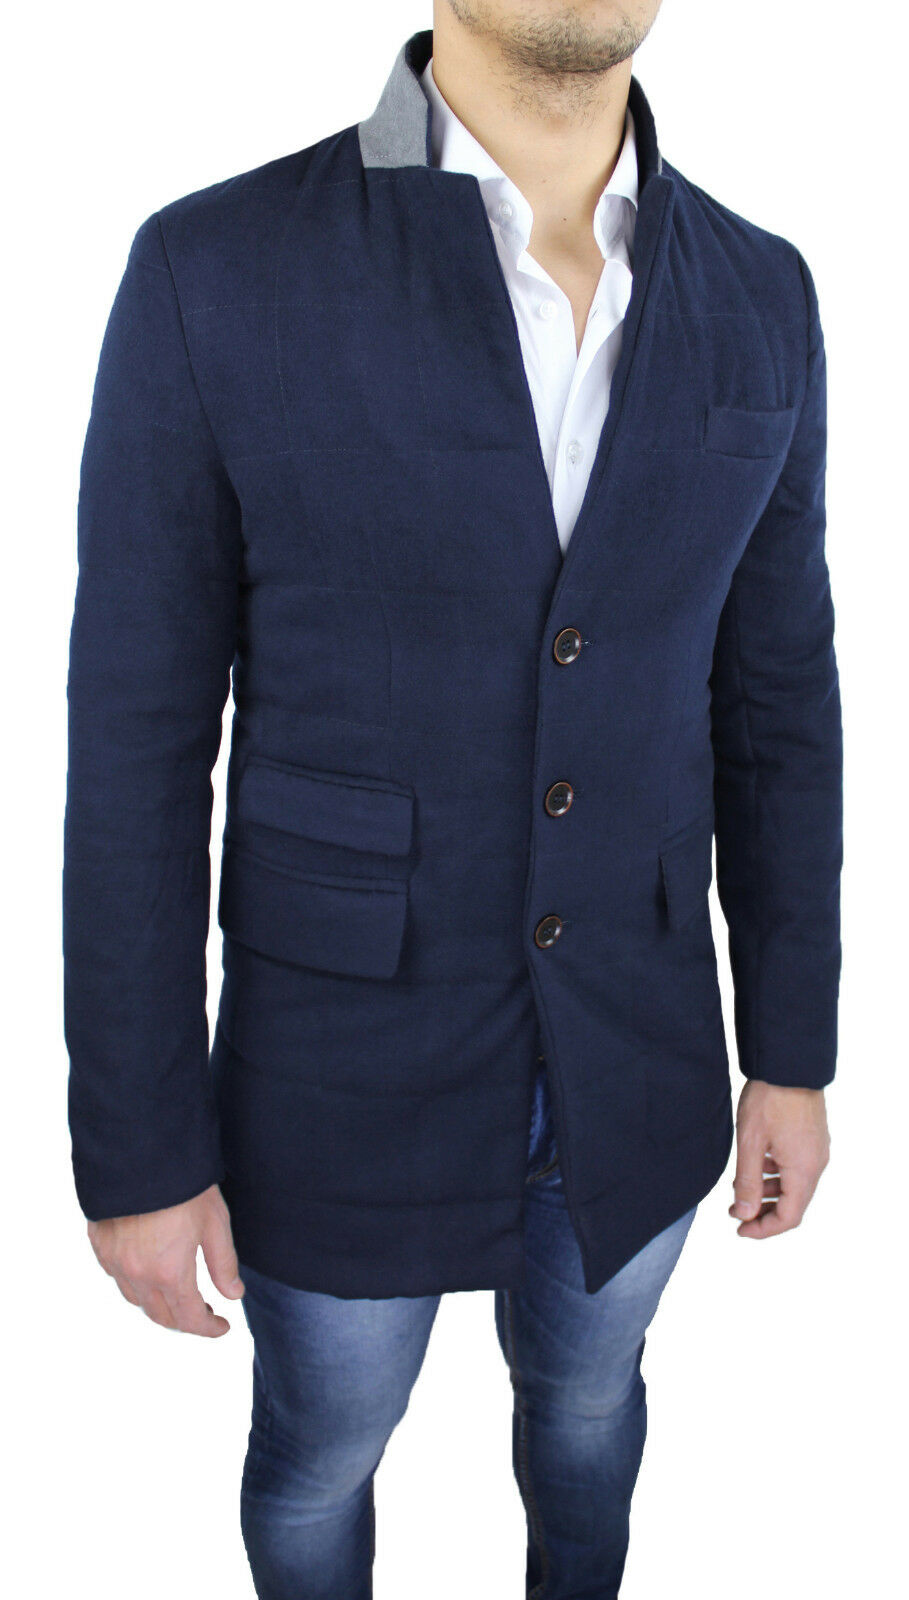 CAPPOTTO INVERNALE men DIAMOND blue NAVY CASUAL GIACCA GIUBBOTTO LUNGO SLIM FIT